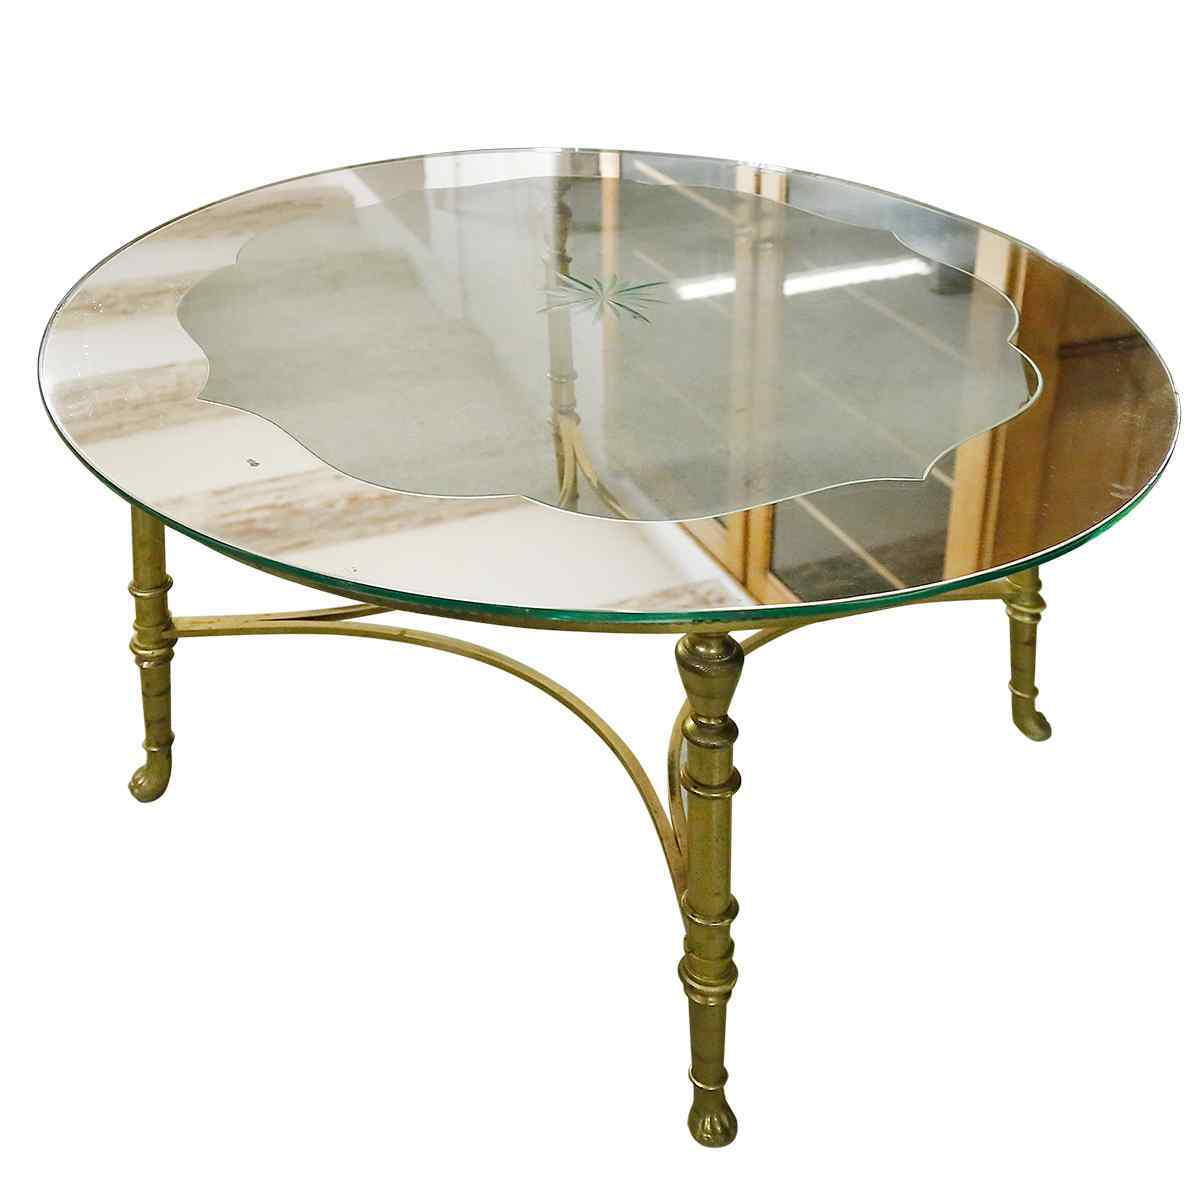 Table basse art d co anticswiss for Table basse art deco occasion